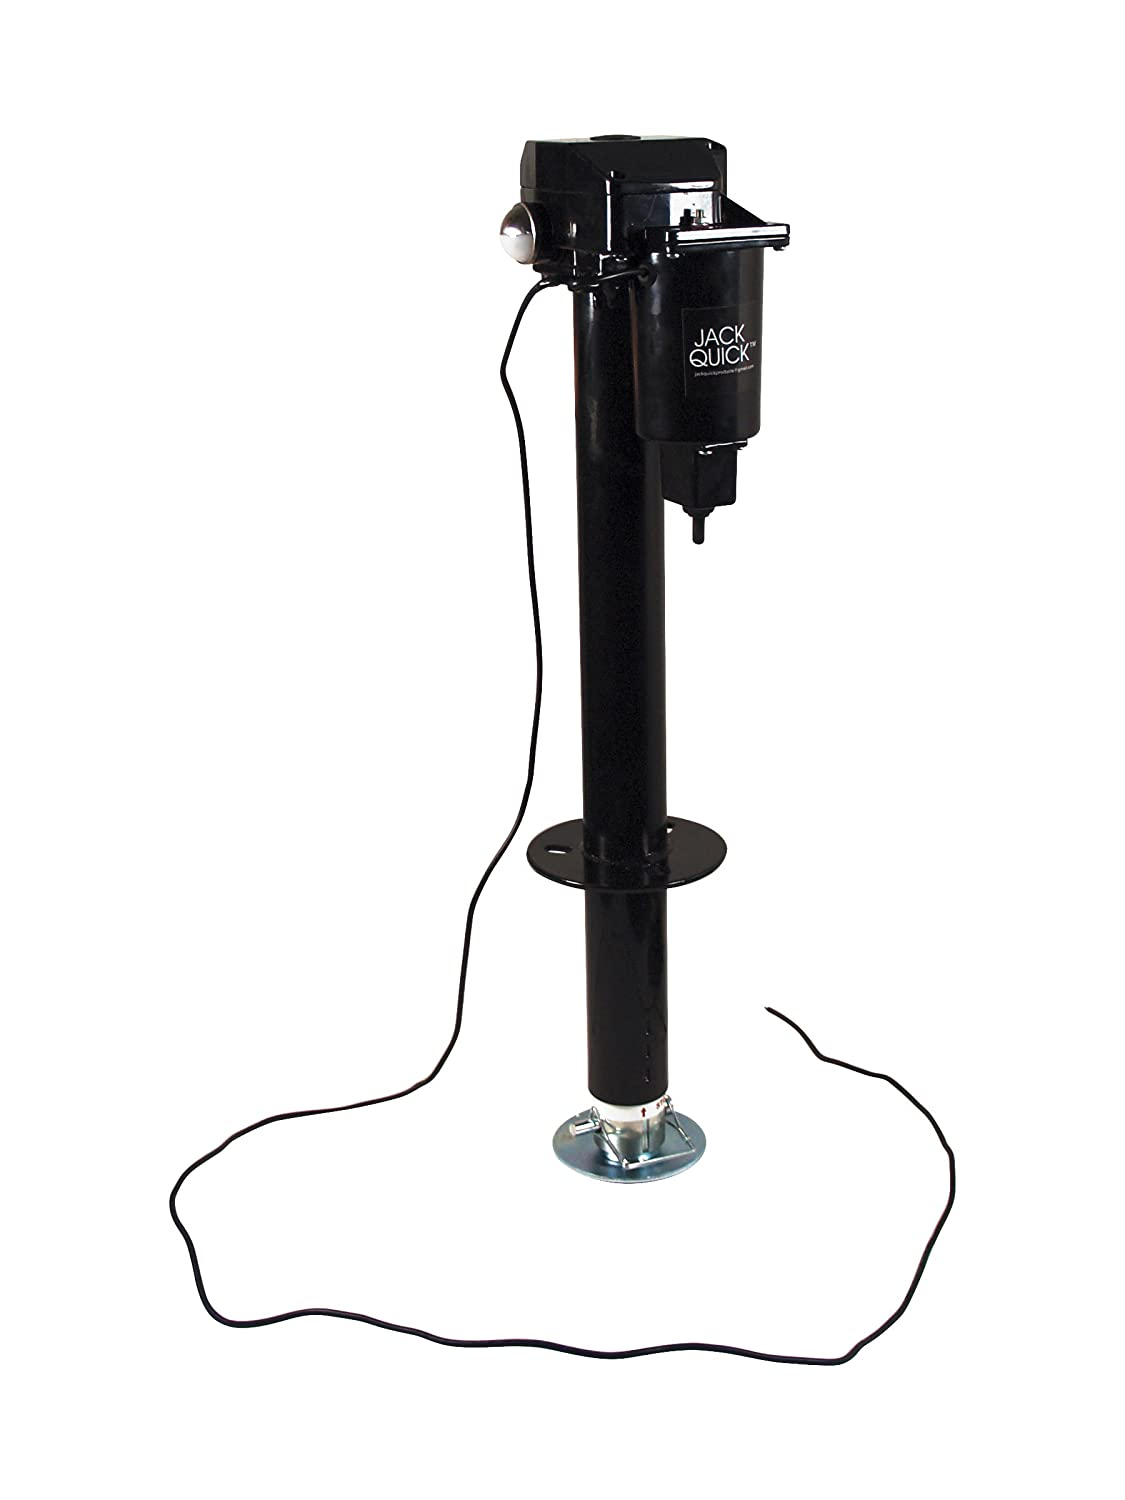 Jack Quick 3000 JQ-3000 12V Electric Tongue Jack with Dual Lights, 3250 lb. Capacity